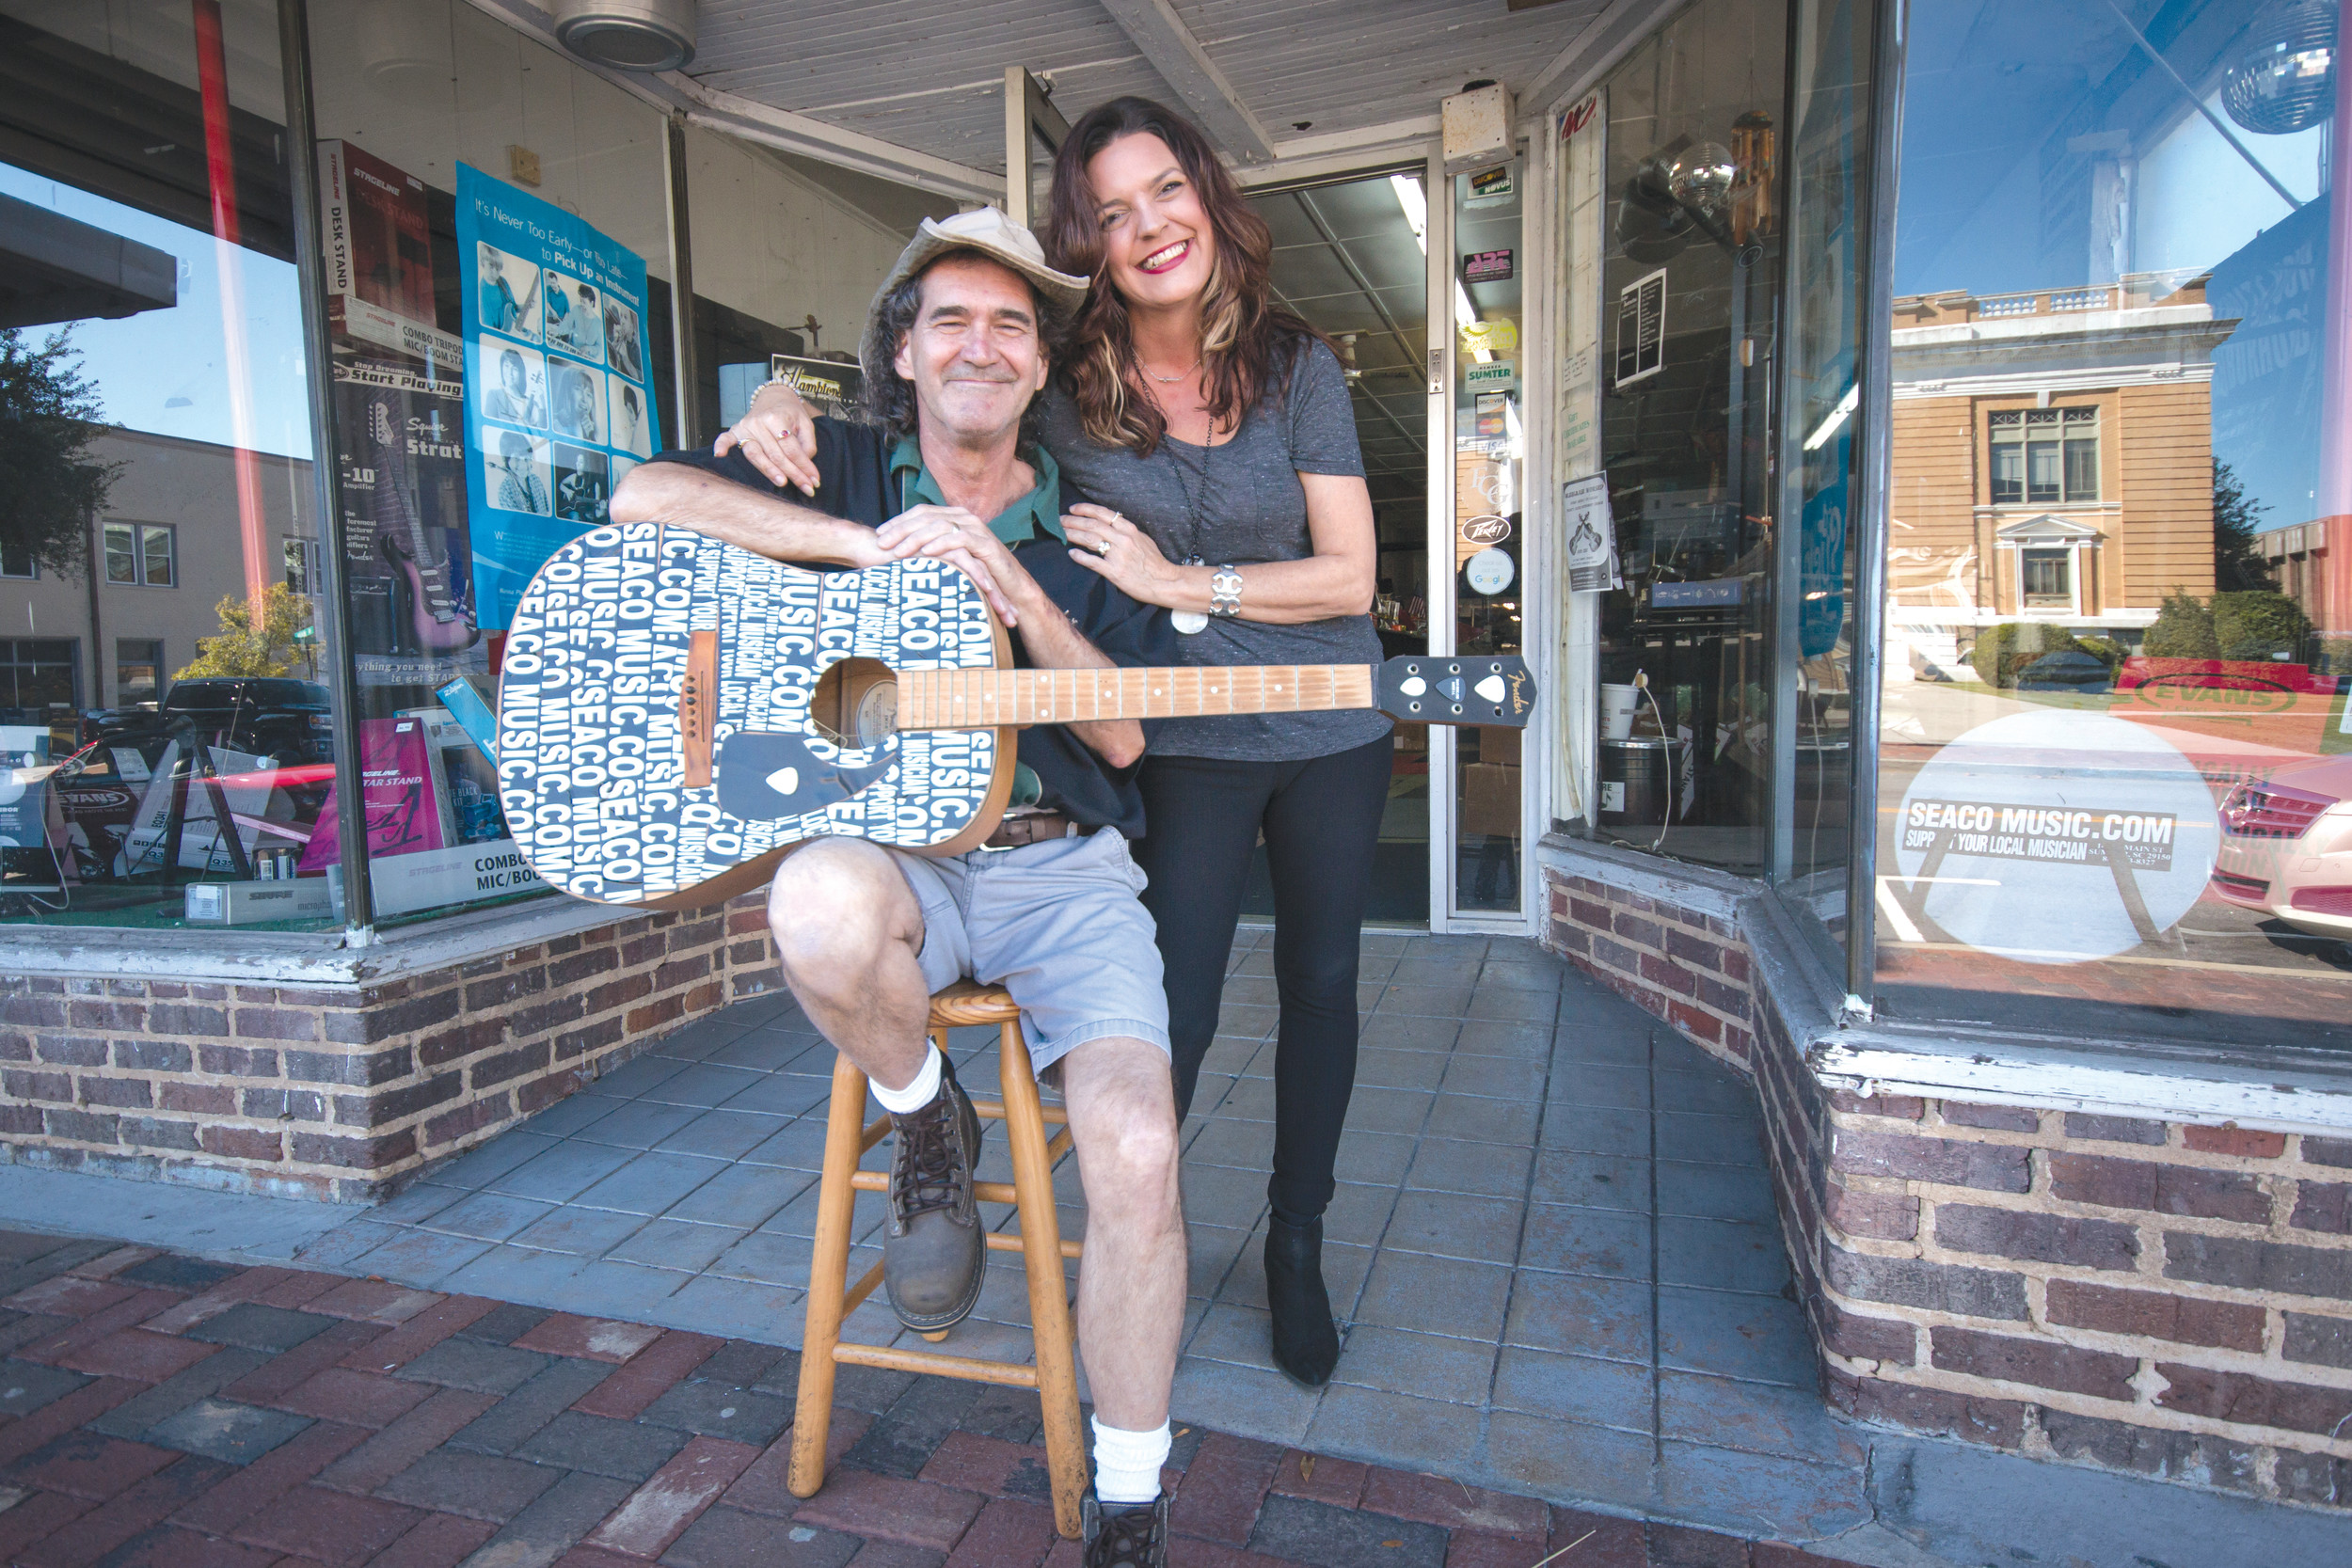 Brooks and Shannan Wilkinson are seen outside SEACO on Main Street. Downtown Sumter will no longer have one of its icons located across from the Sumter County Courthouse on Main Street. On Oct. 31, Brooks Wilkinson will lock the doors on the iconic Main Street music shop for the last time. As the music begins again, this time across town, the 70-year-old Sumter business will have a grand reopening mid-November in its new location on Bultman Drive.